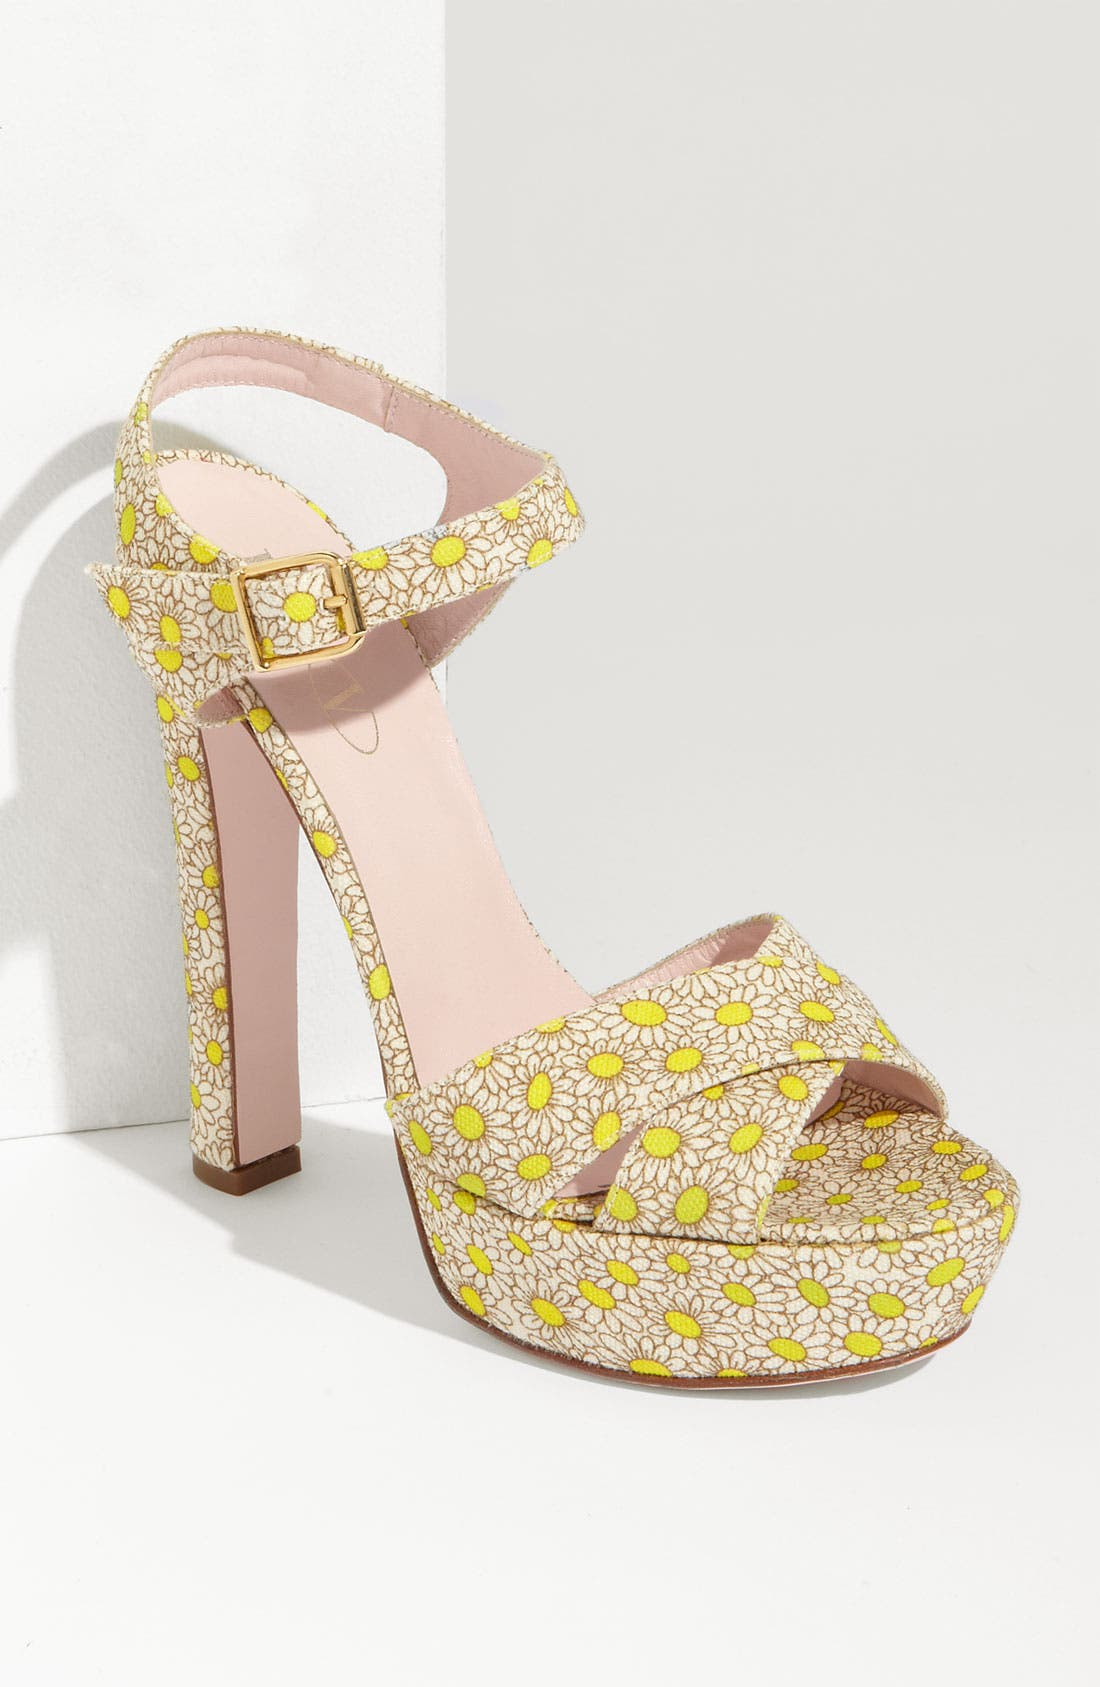 Alternate Image 1 Selected - RED Valentino High Heel Sandal